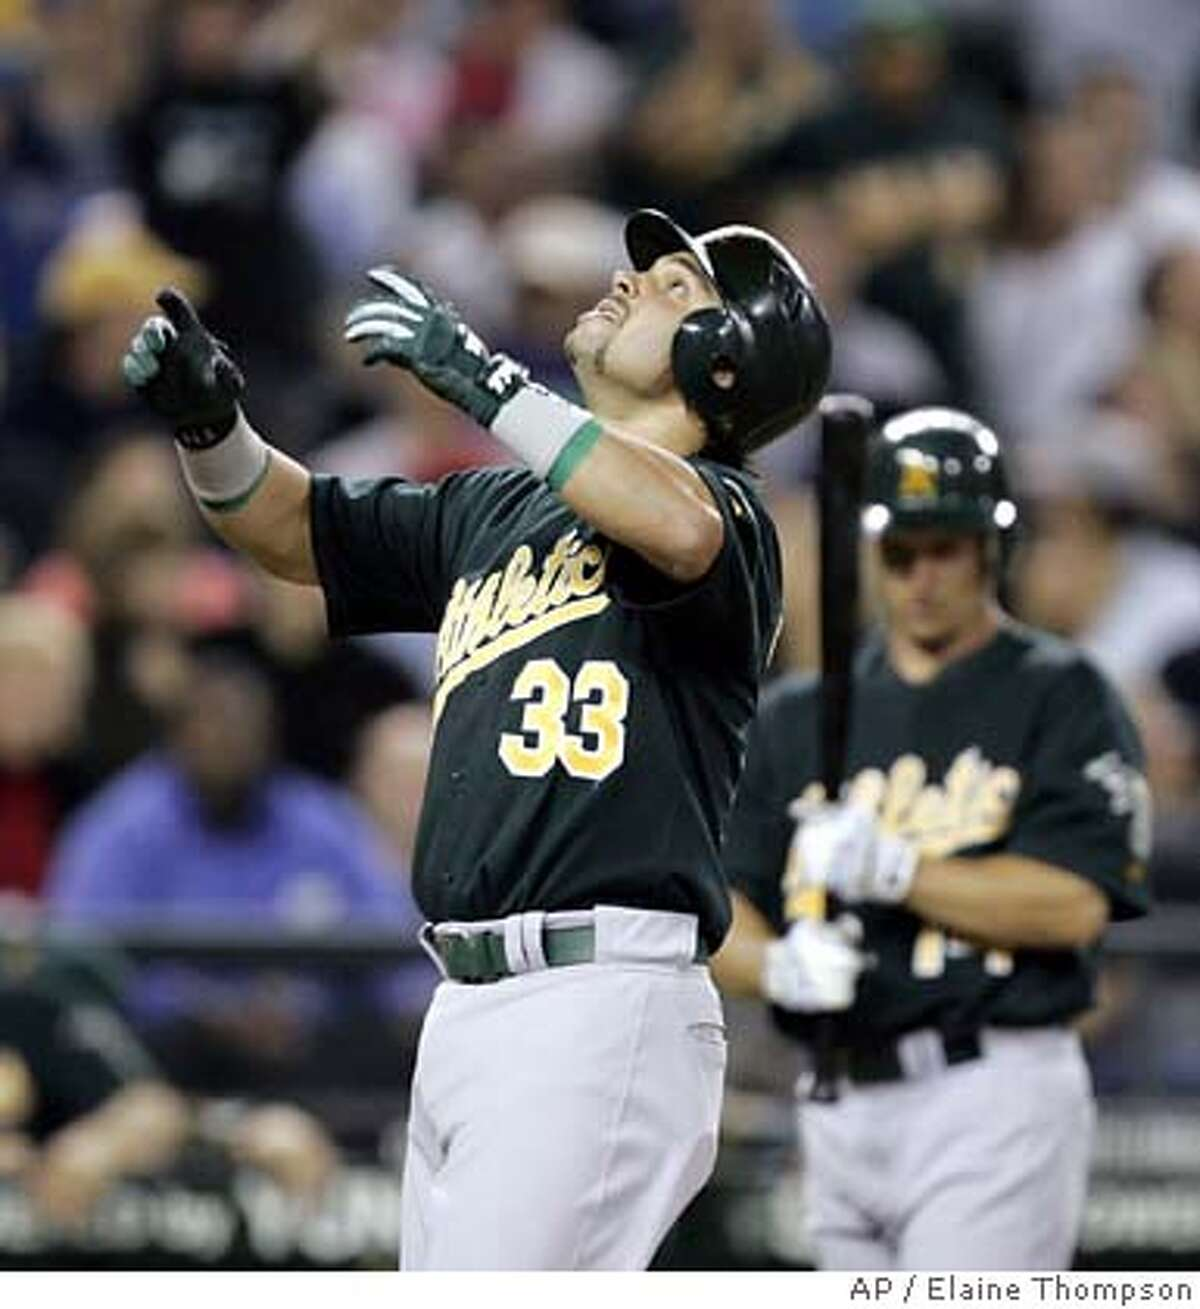 Oakland Athletics' Nick Swisher begins to raise his arms to point skyward as he crosses home on his second inning home run against the Seattle Mariners Tuesday, Sept. 26, 2006, in Seattle. Waiting on-deck is Mark Ellis. (AP Photo/Elaine Thompson)